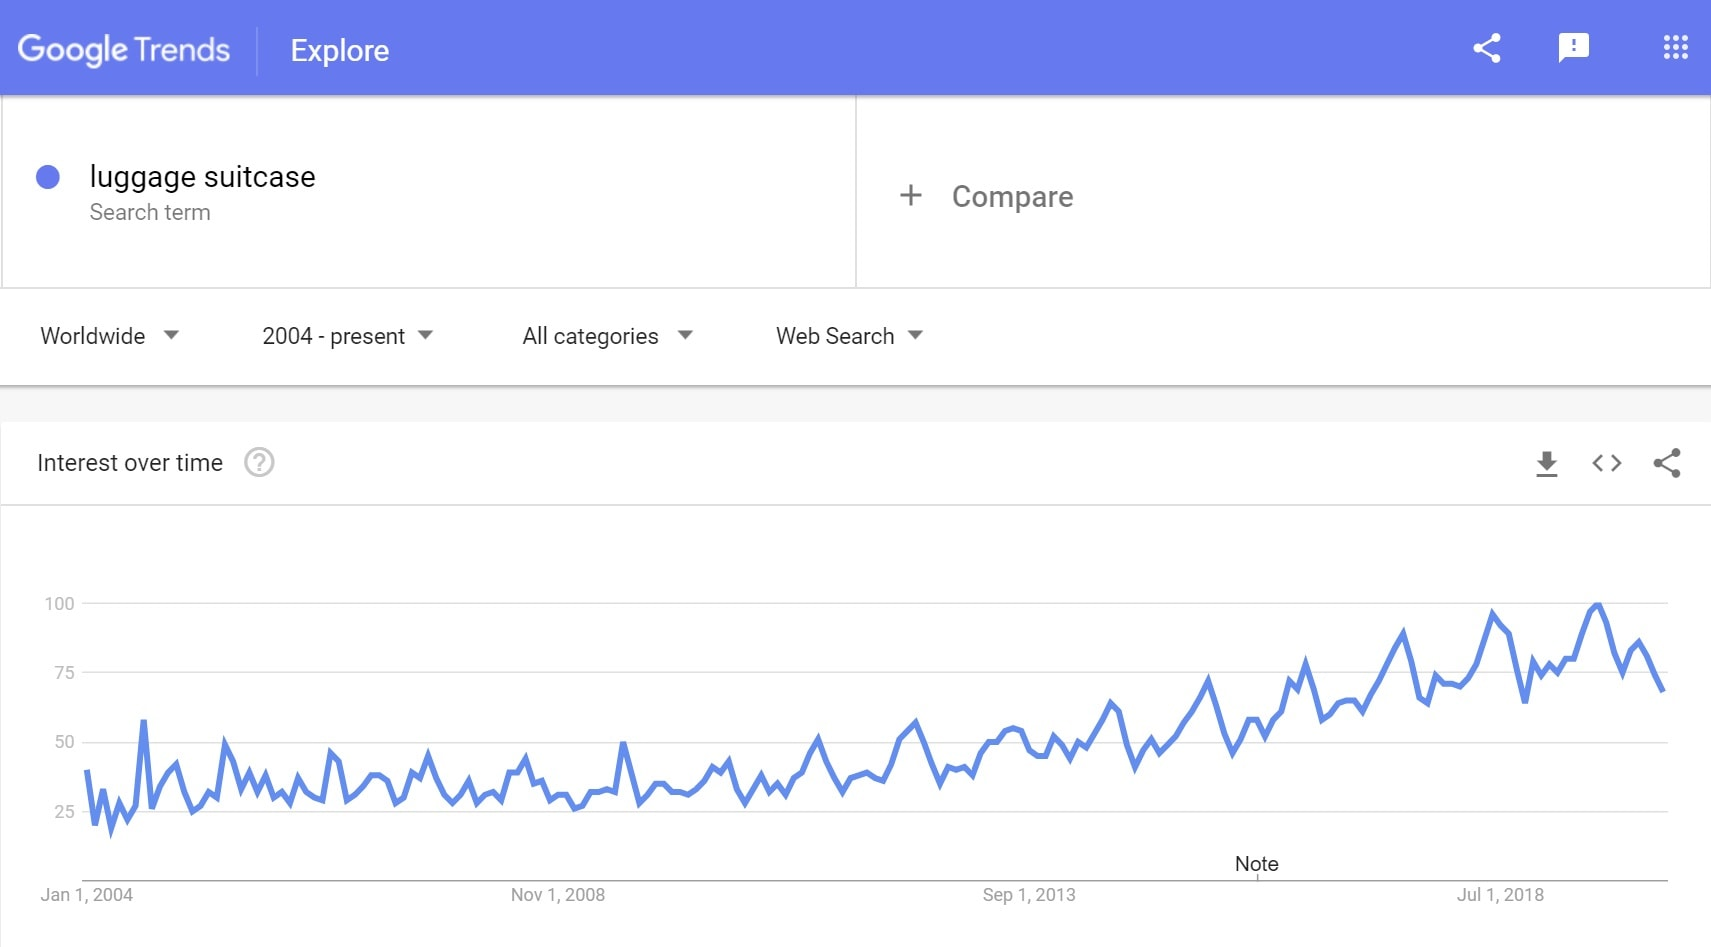 Google trends: Luggage suitcase to sell